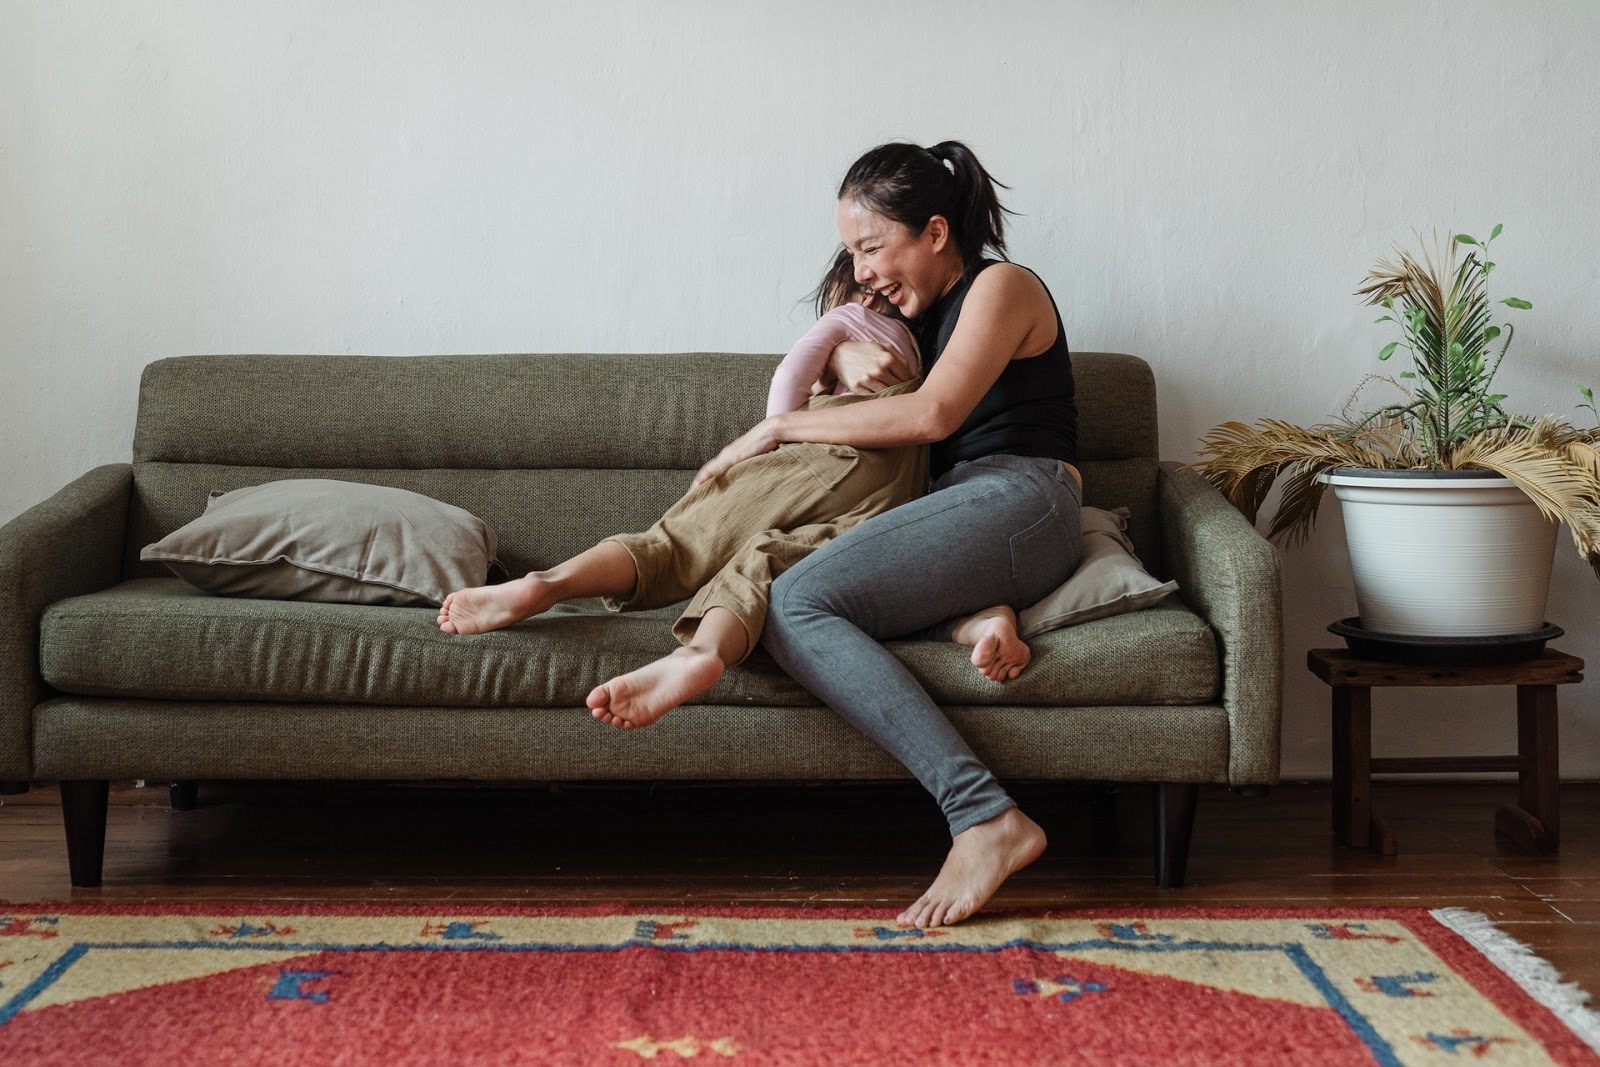 Young mother playing with her child on the couch